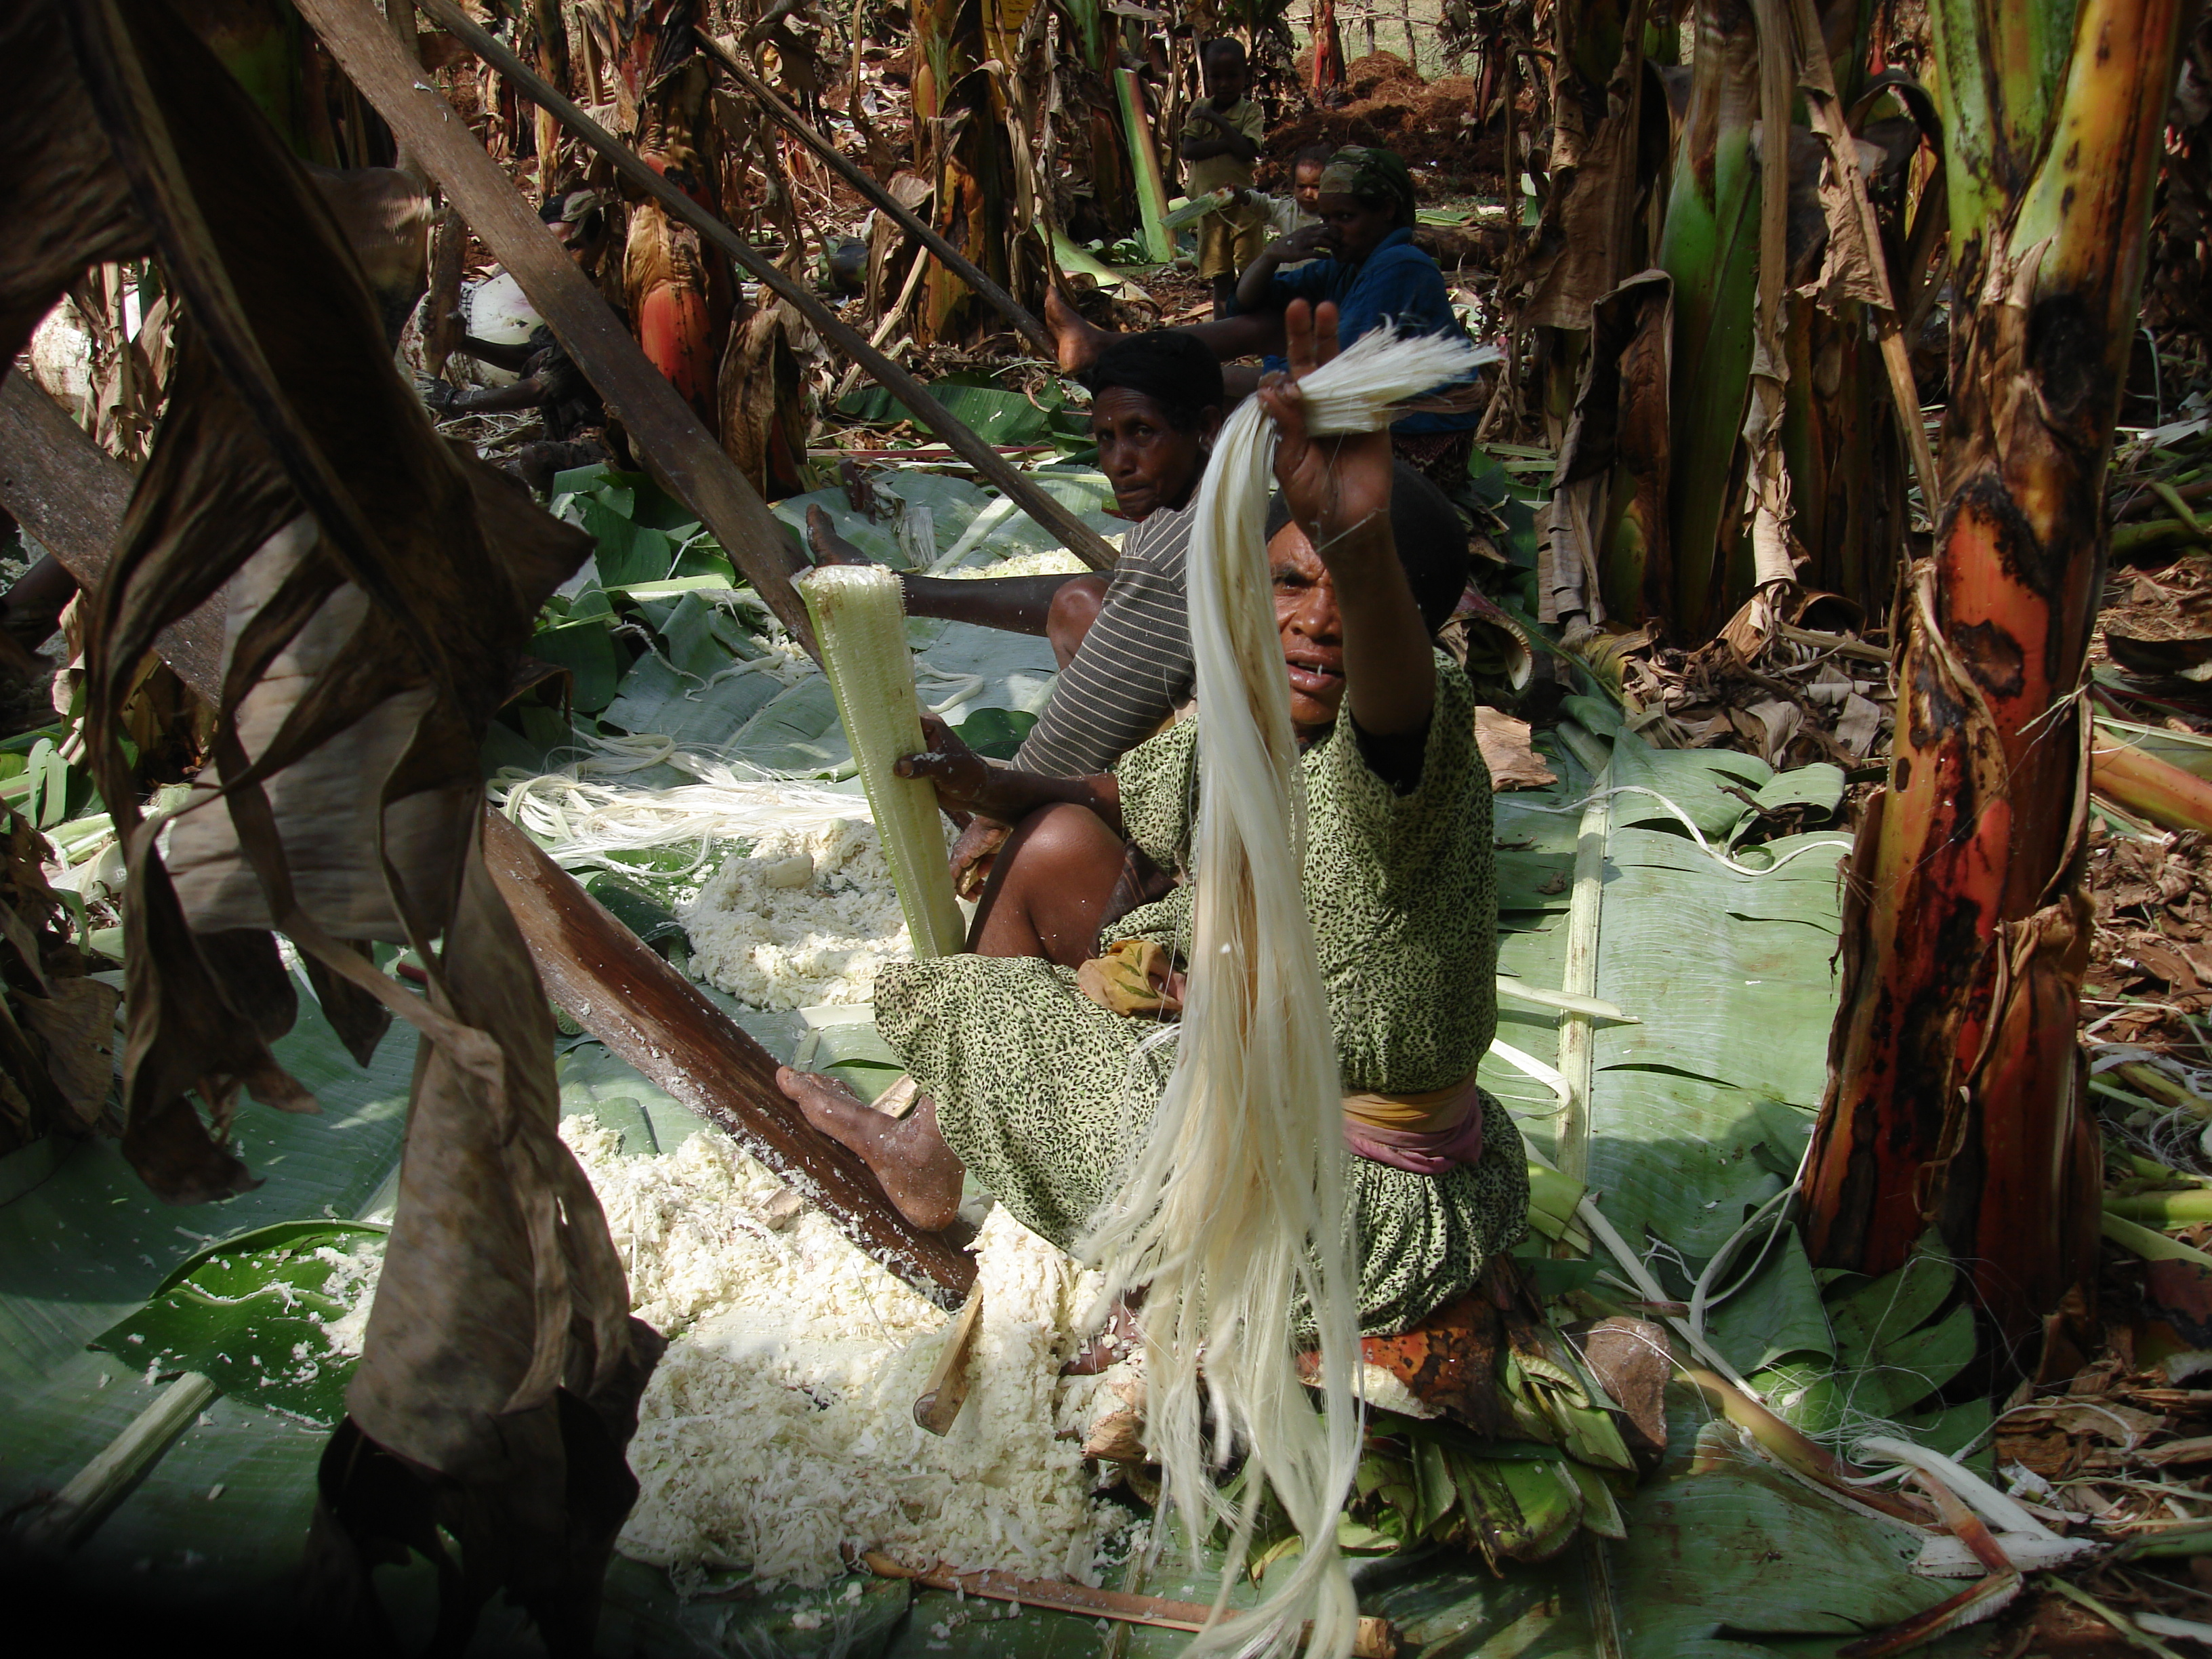 The men dig up the plants which the women slowly dismantle (3 women can only process 2 enset plants in a day). Their feet are as important as their hands to separate the fibre from the pulp in the leaf sheaths. The pulp is used in the making of fermented starch. (Photo by Guy Blomme)